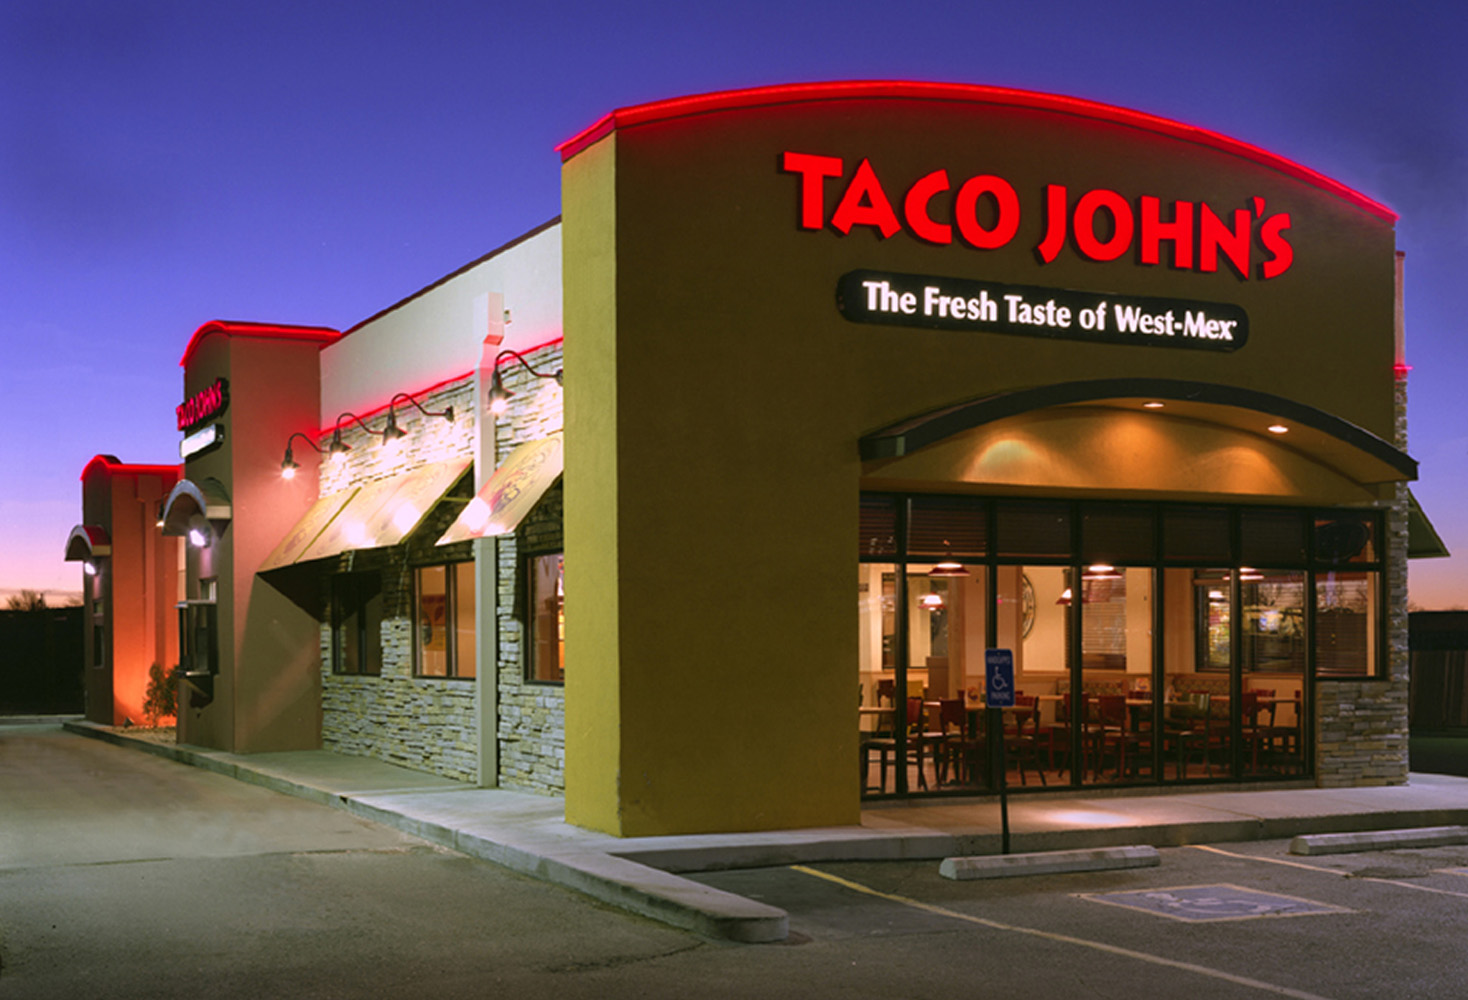 Join us and you will receive: Use of the Taco John's brand name, systems, logo and store design. A comprehensive four or five week Taco John's Management Training.